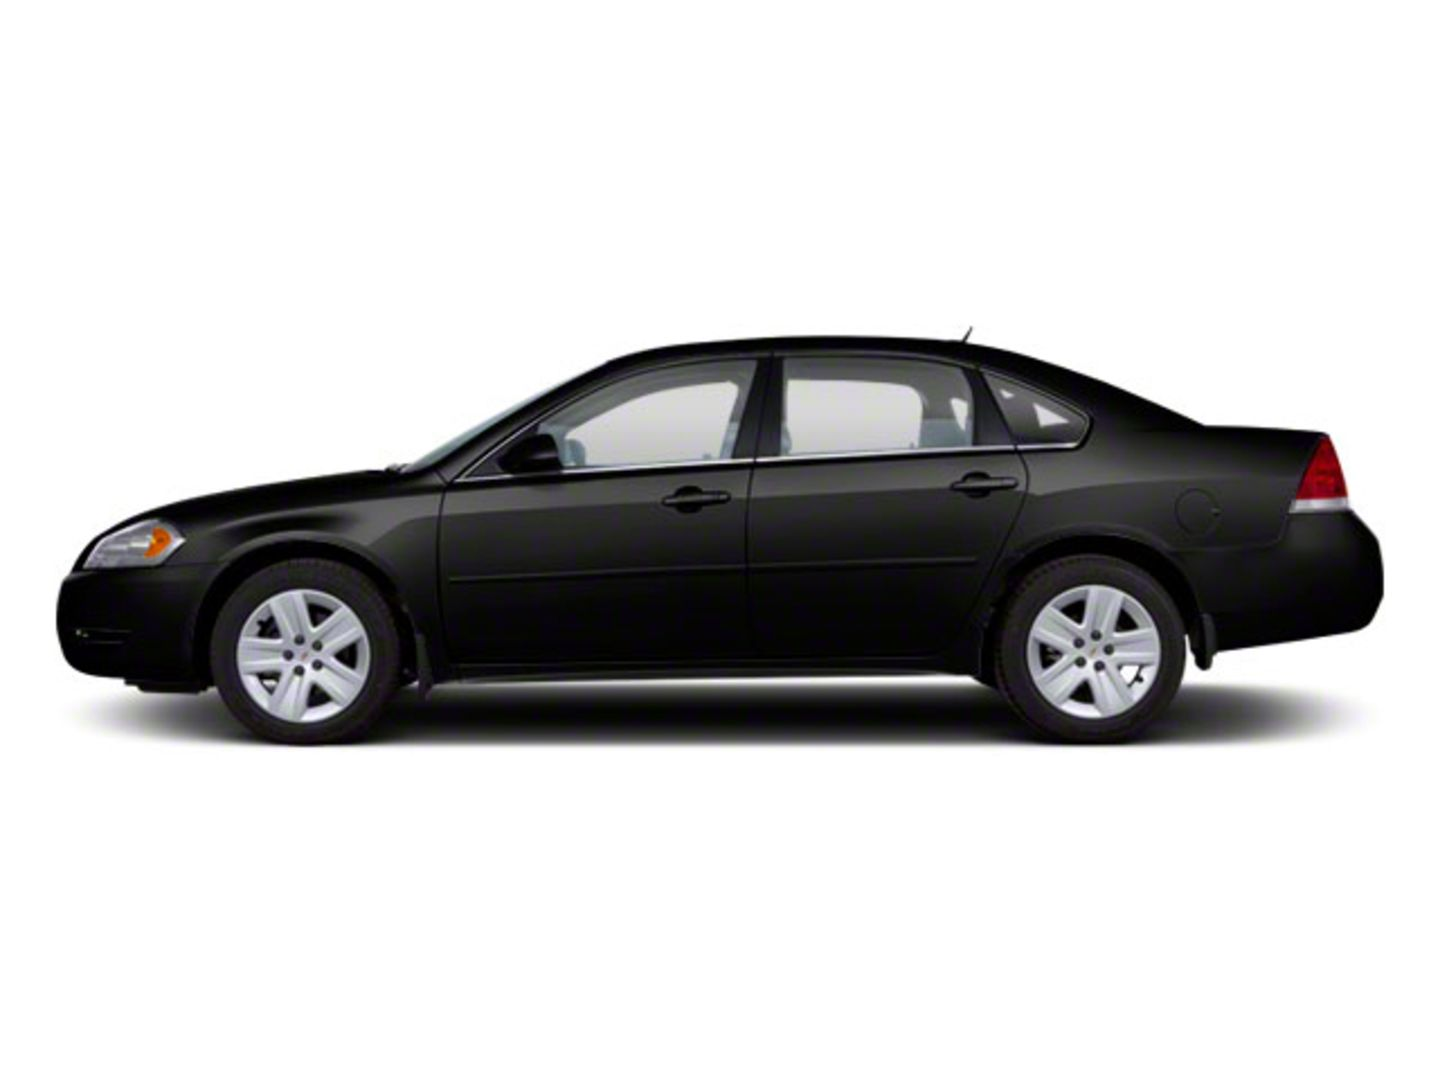 2011 Chevrolet Impala LT for sale in London, Ontario